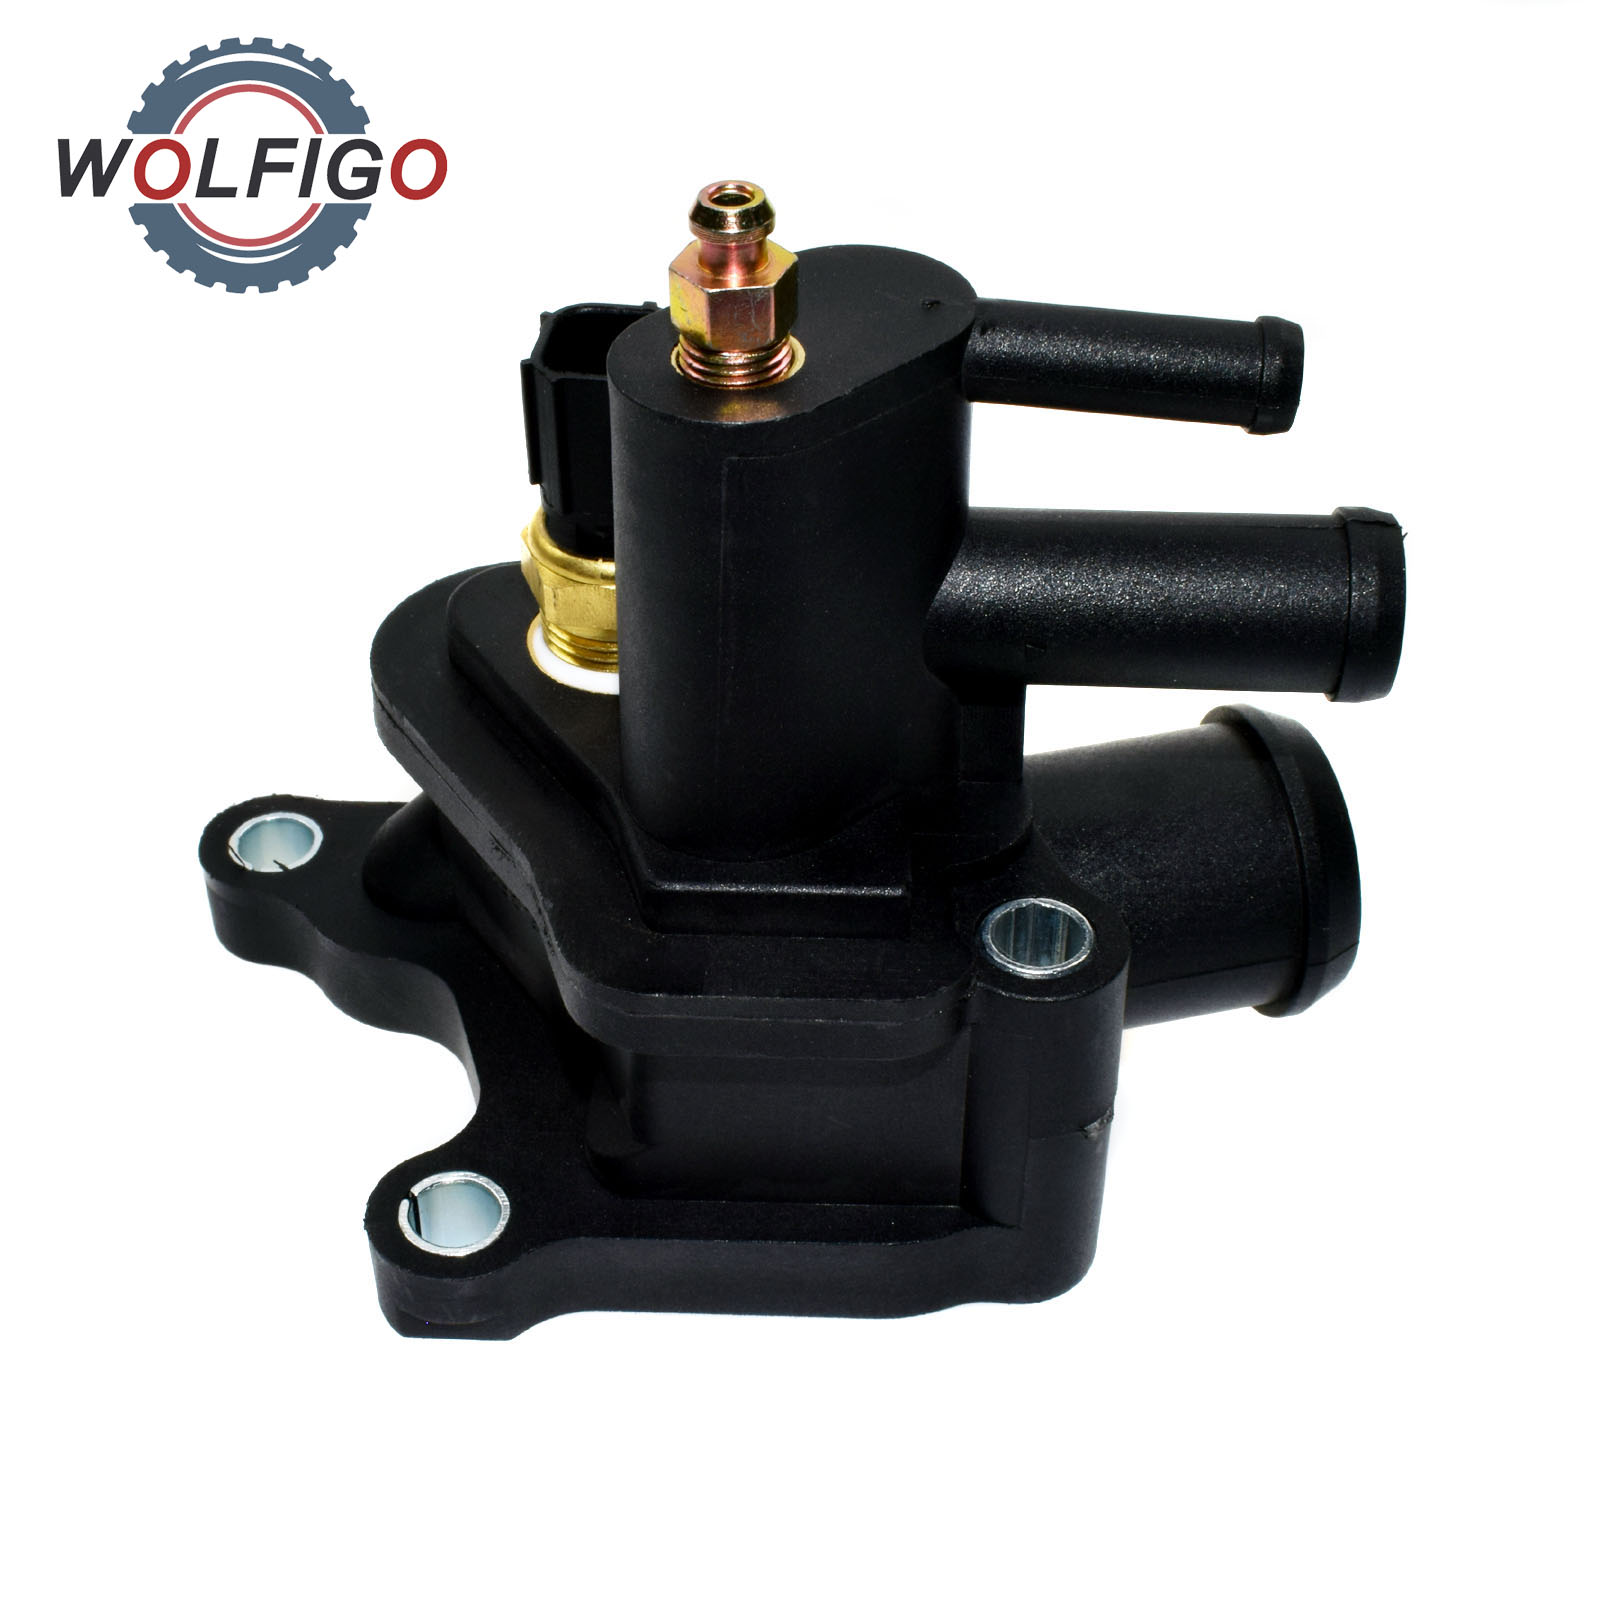 2004 Dodge Stratus Thermostat Location Car Installation Guide 04 2 7 Engine Diagram Aliexpress Buy Wolfigo Housing Coolant Air Rhaliexpress At